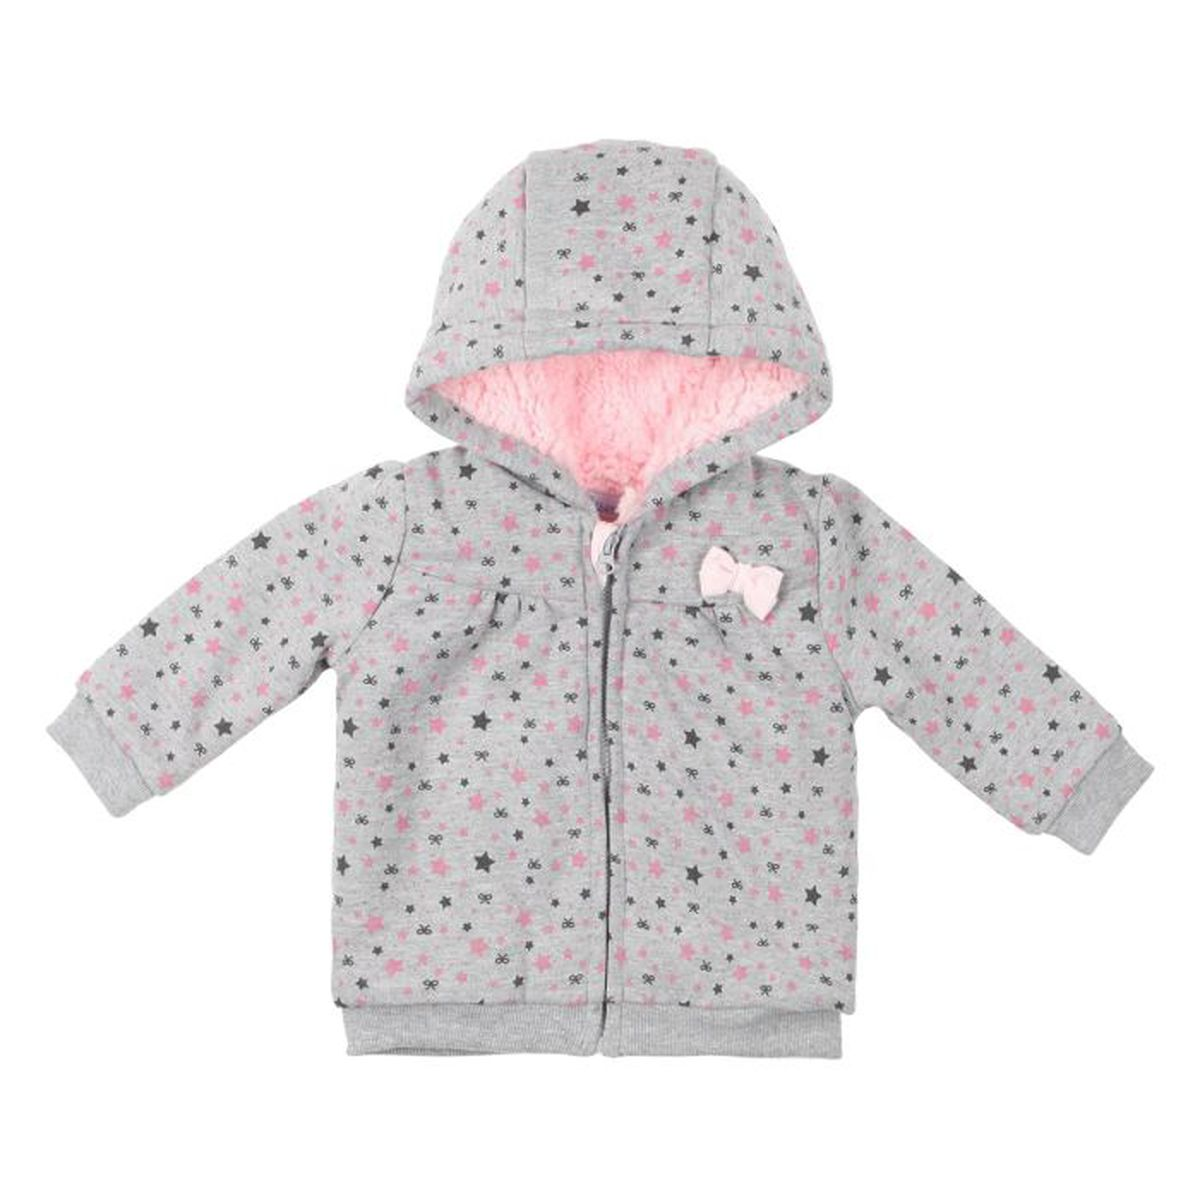 bebe reve gilet capuche b b fille gris noir et rose achat vente gilet cardigan soldes. Black Bedroom Furniture Sets. Home Design Ideas